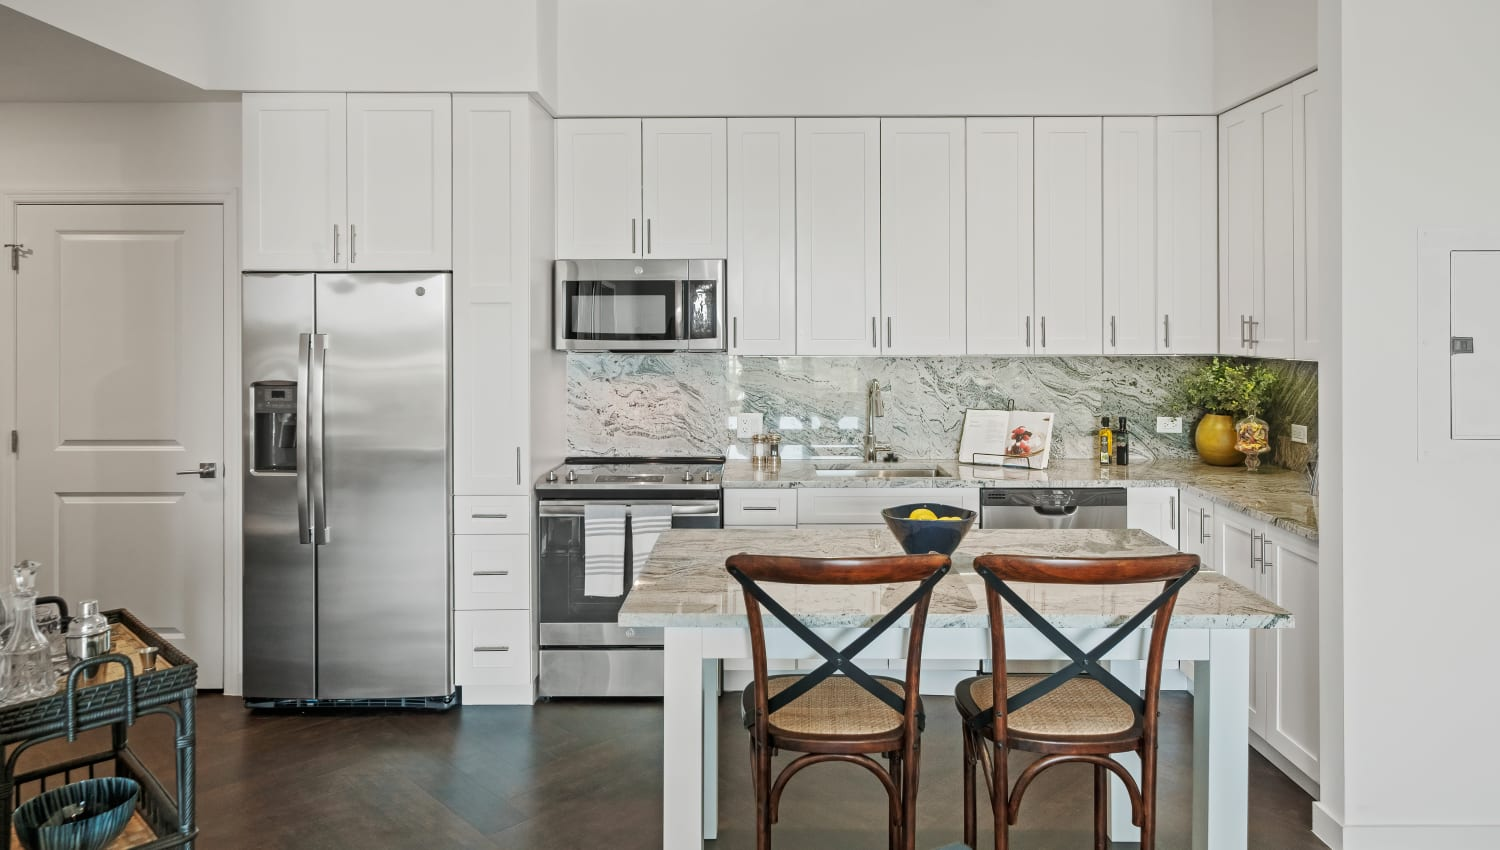 Model kitchen with white cabinetry and quartz countertops and full-height backsplashes at Town Lantana in Lantana, Florida